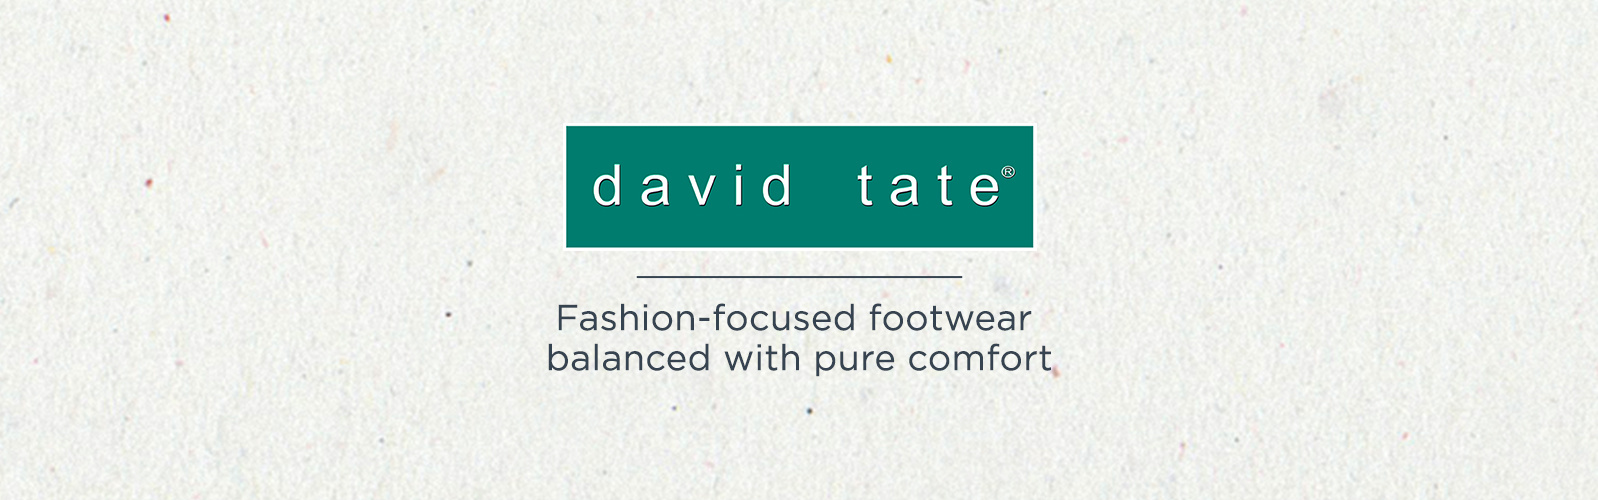 David Tate — Fashion-focused footwear balanced with pure comfort